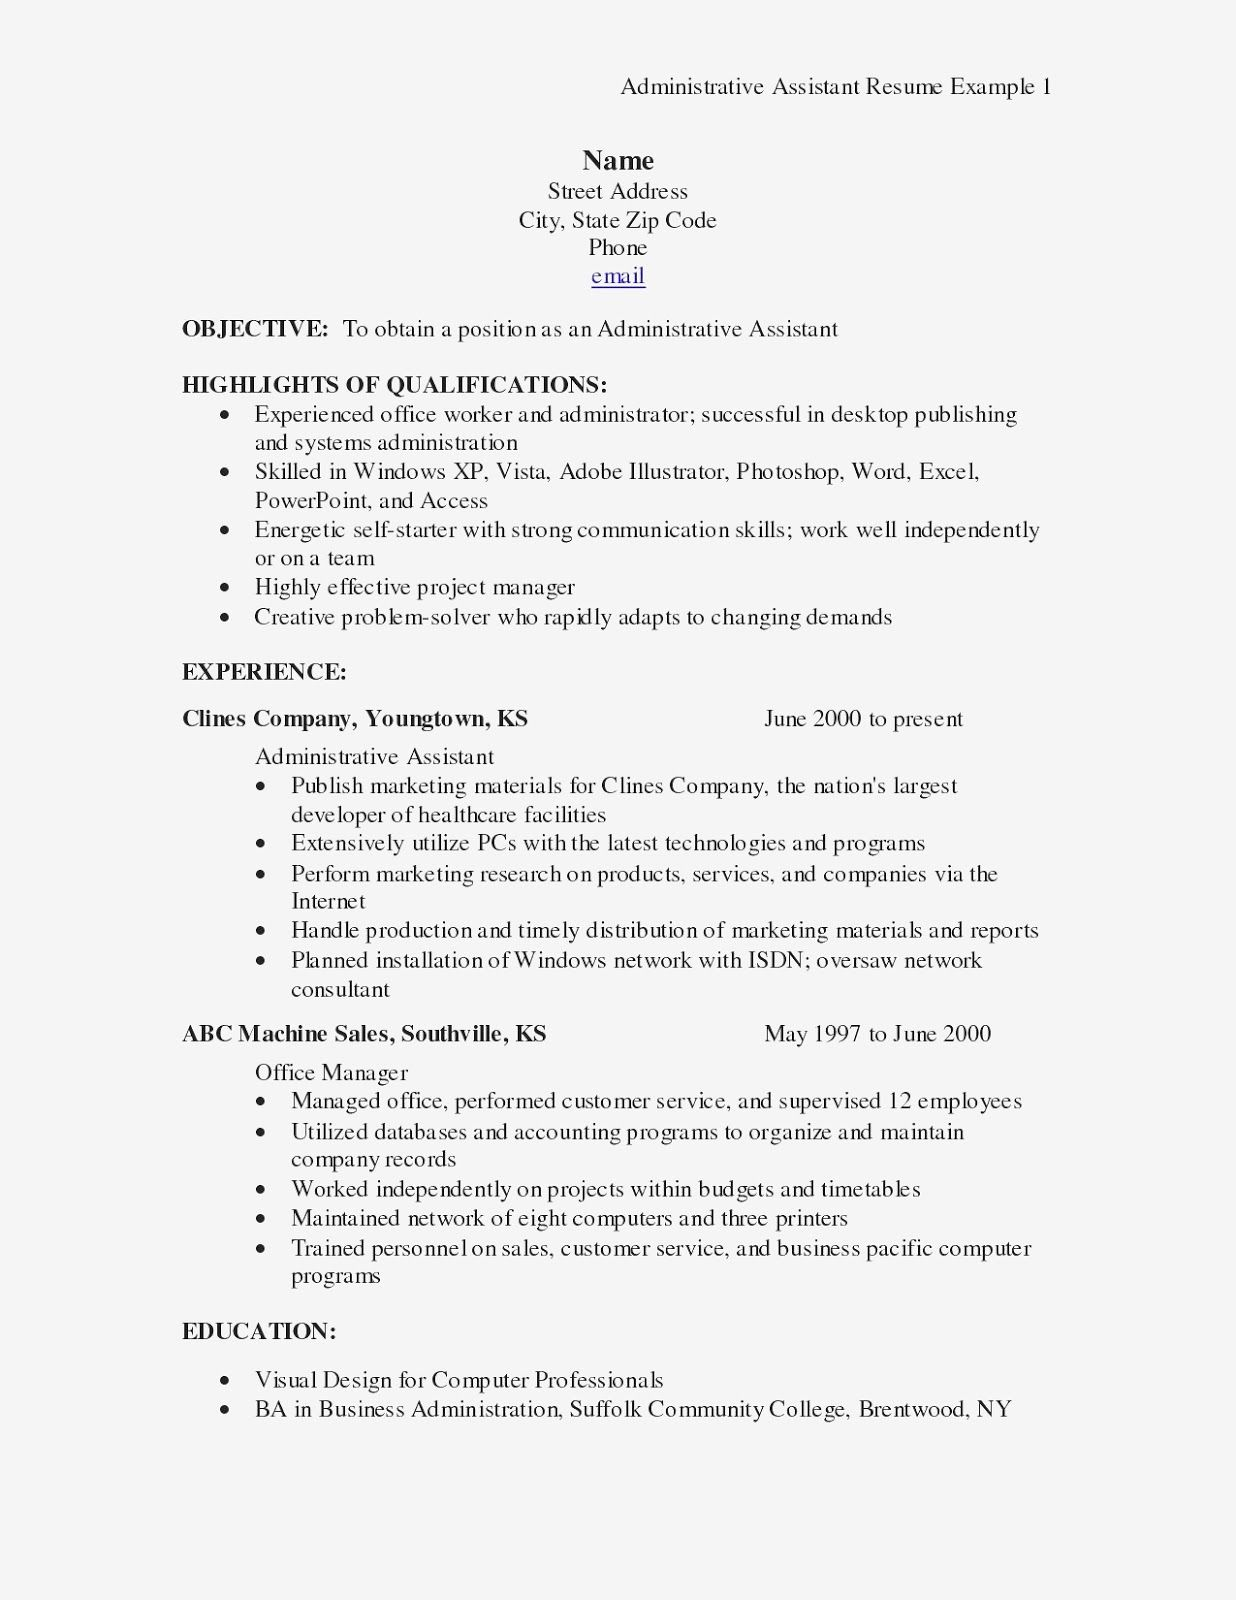 Marketing Assistant Resume Example Assistant Marketing Manager Resume Examples 2019 Mark Administrative Assistant Resume Resume Examples Best Resume Template